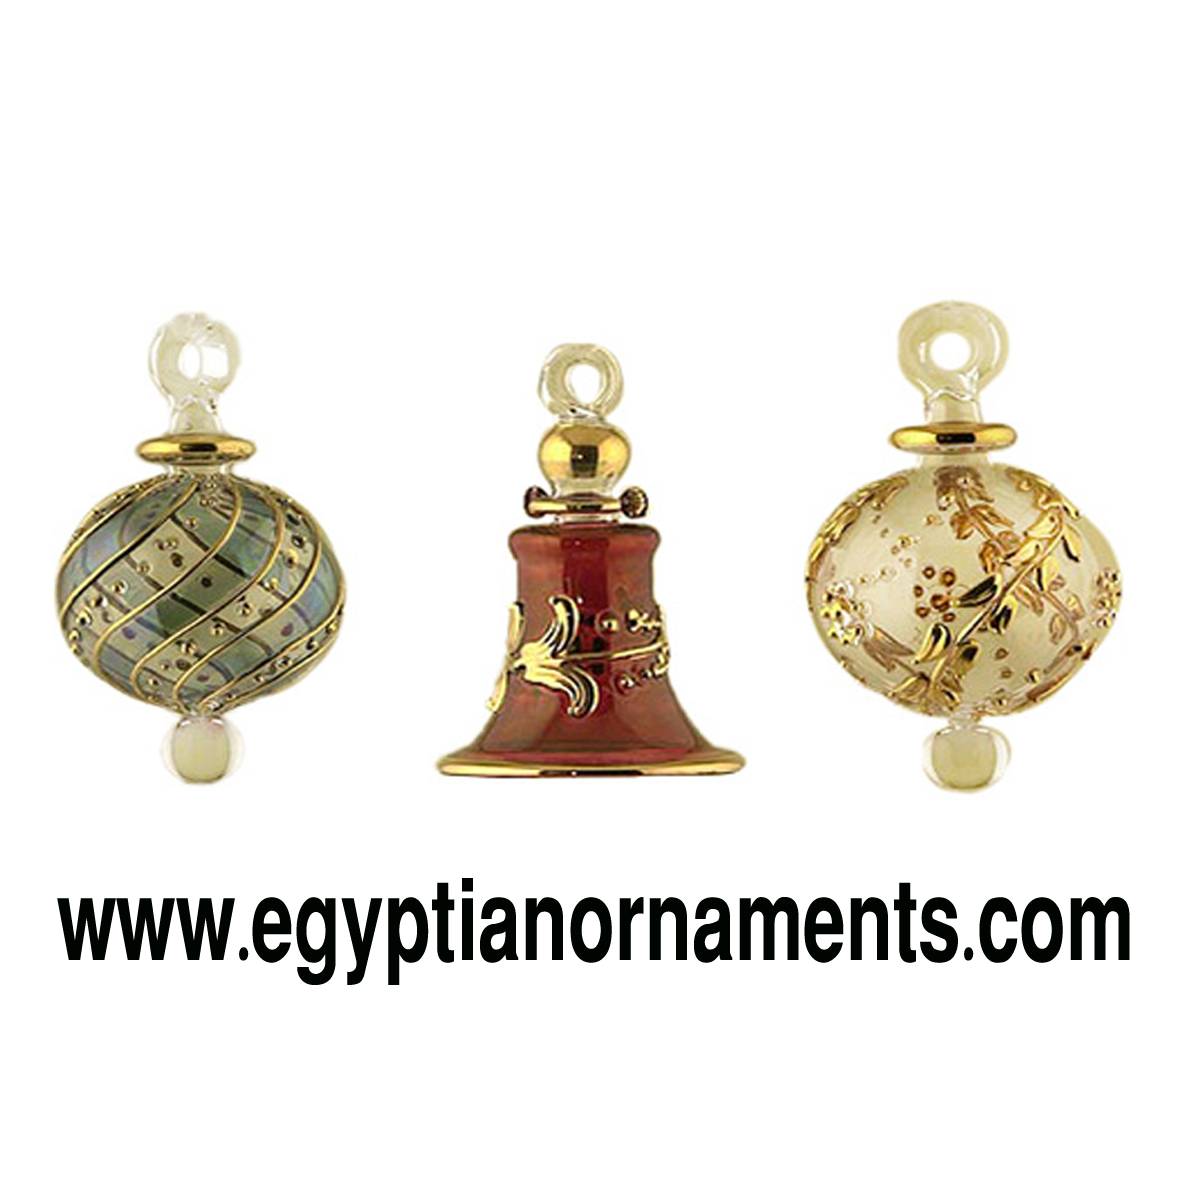 Lot of 3 Egyptian Hand Blown Glass Ornaments